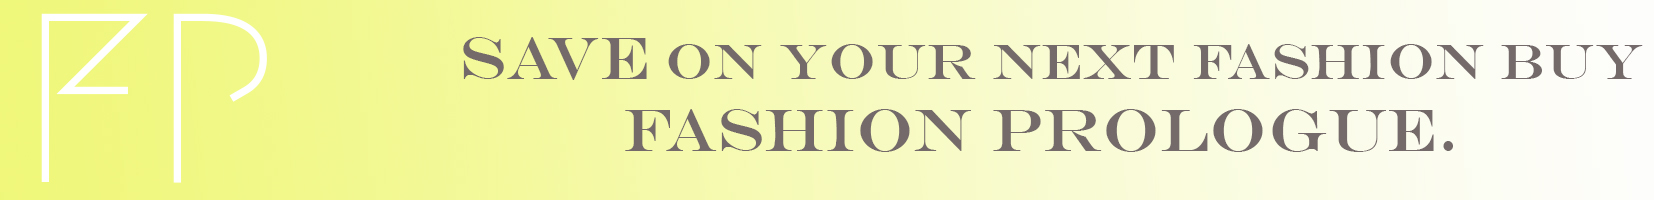 Fashion Prologue - save on fashion banner.jpg